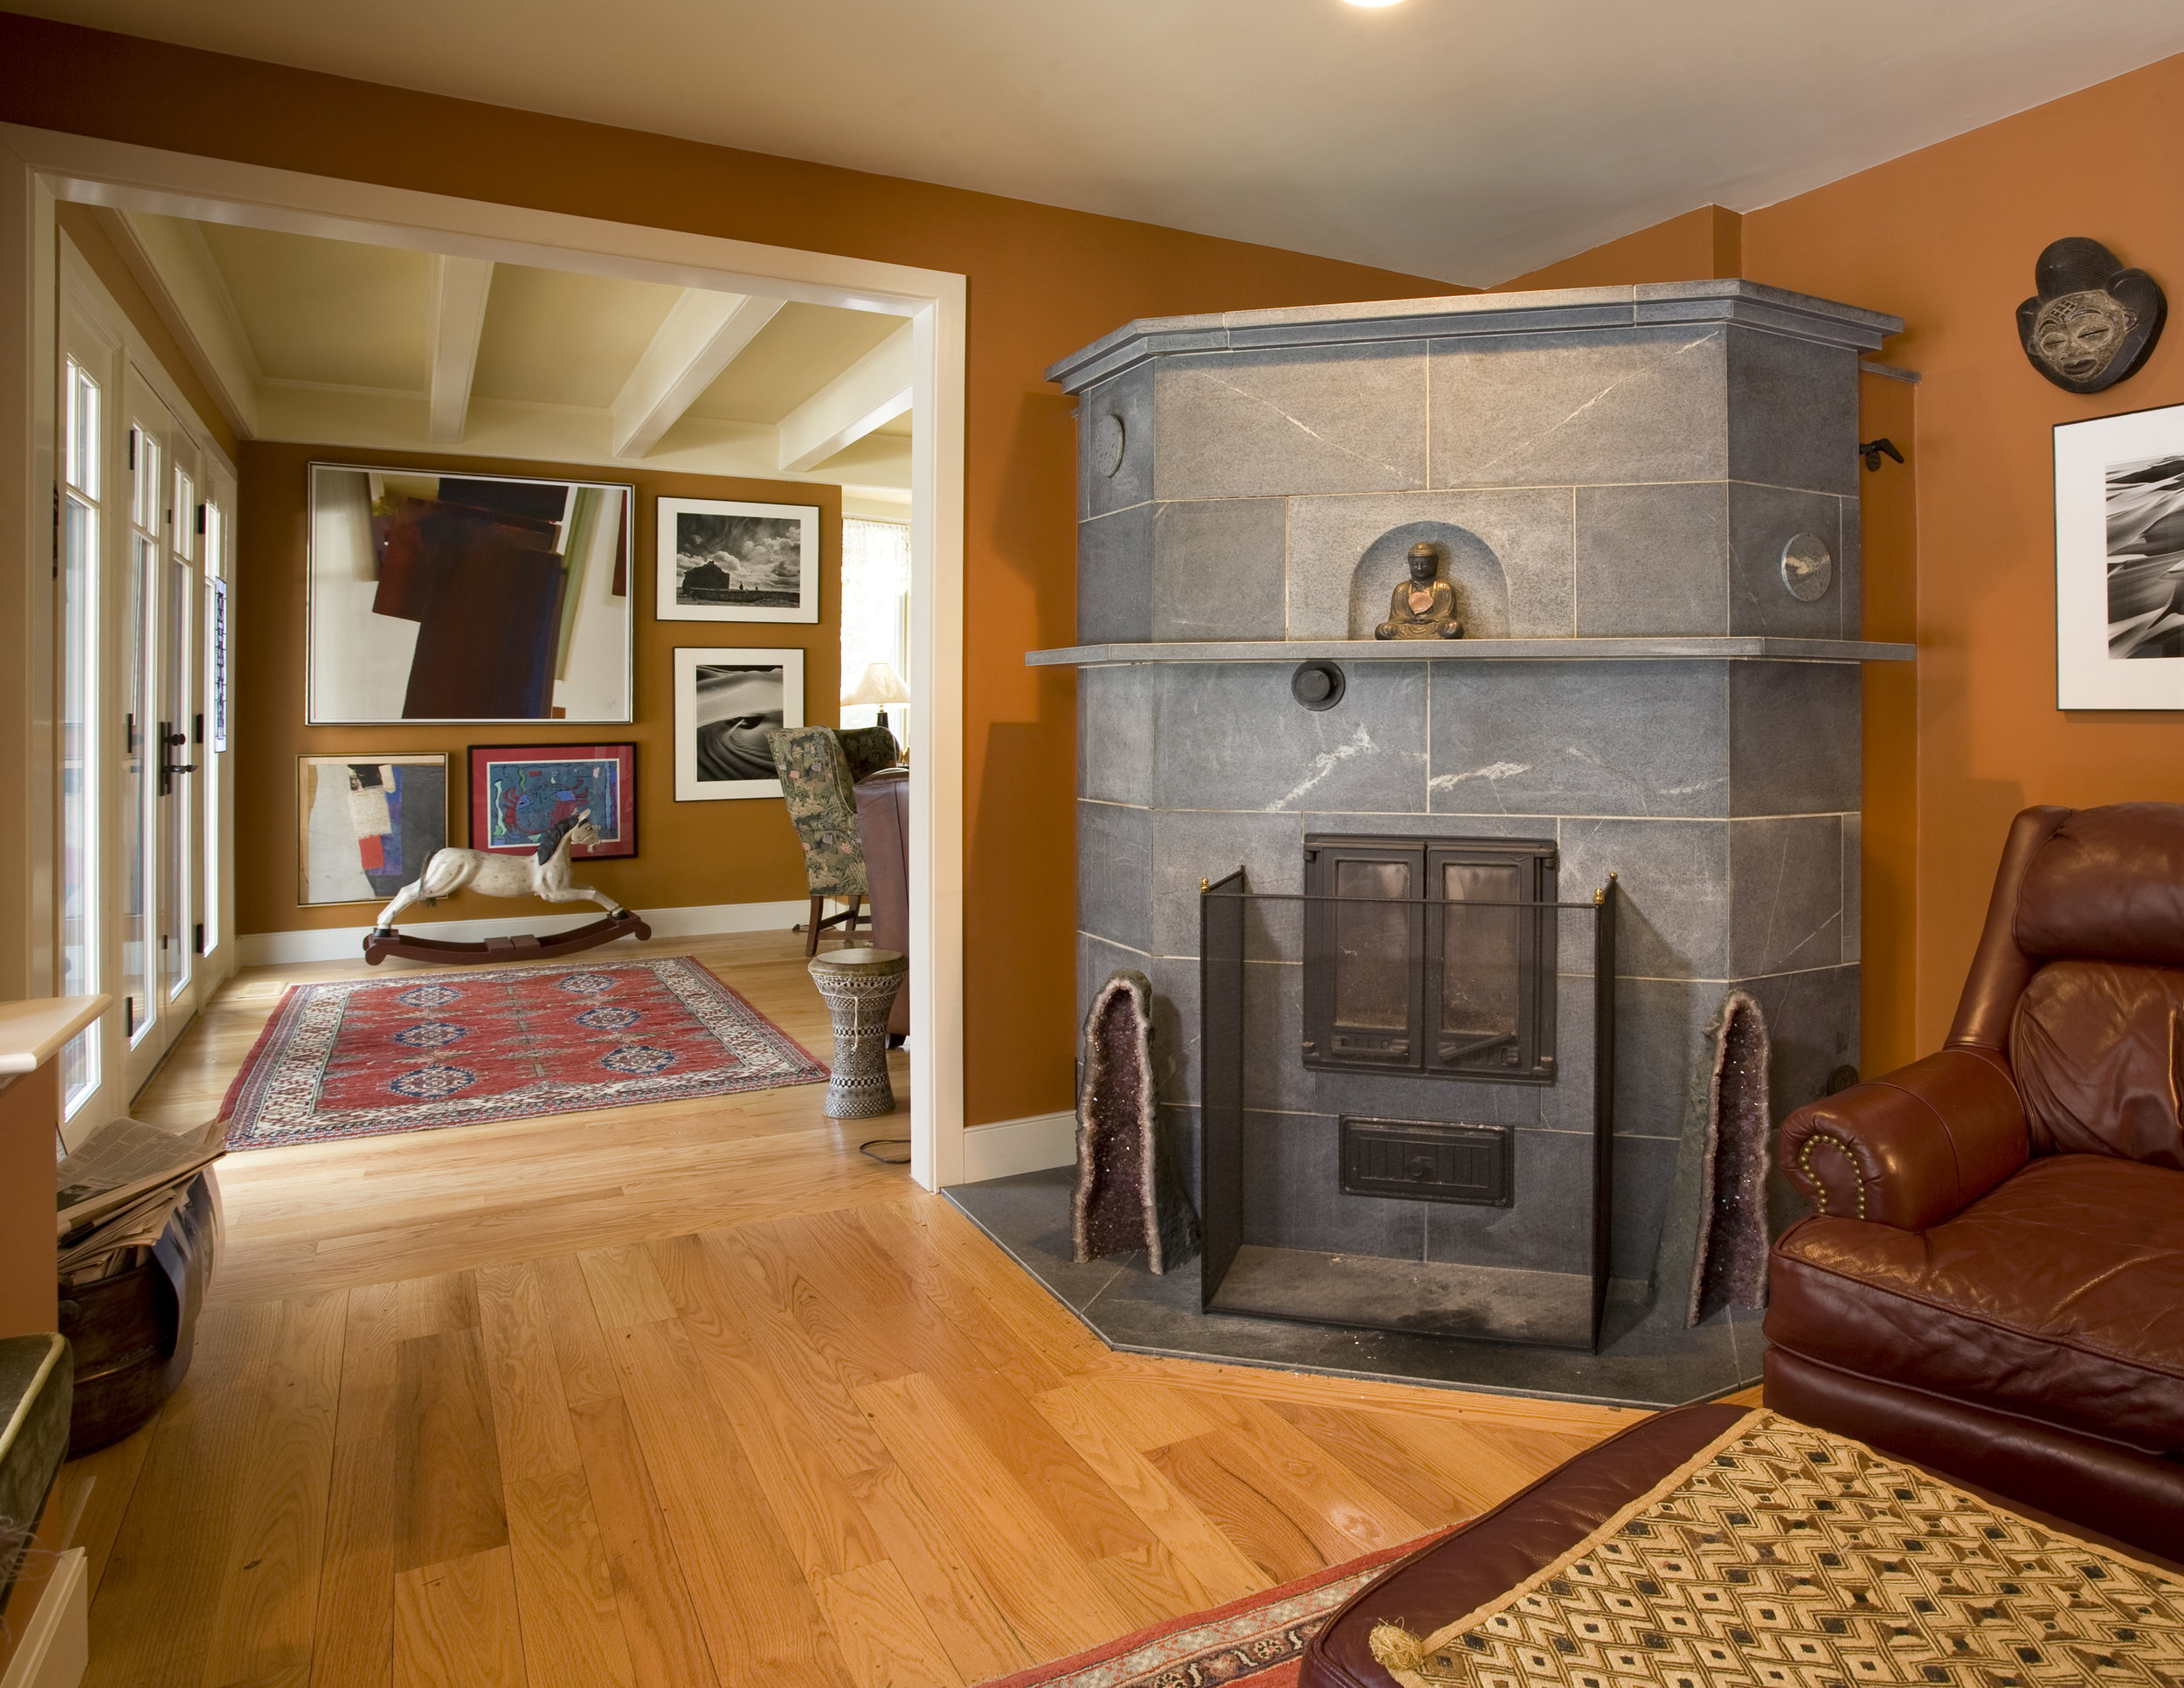 Eclectic interior with fireplace